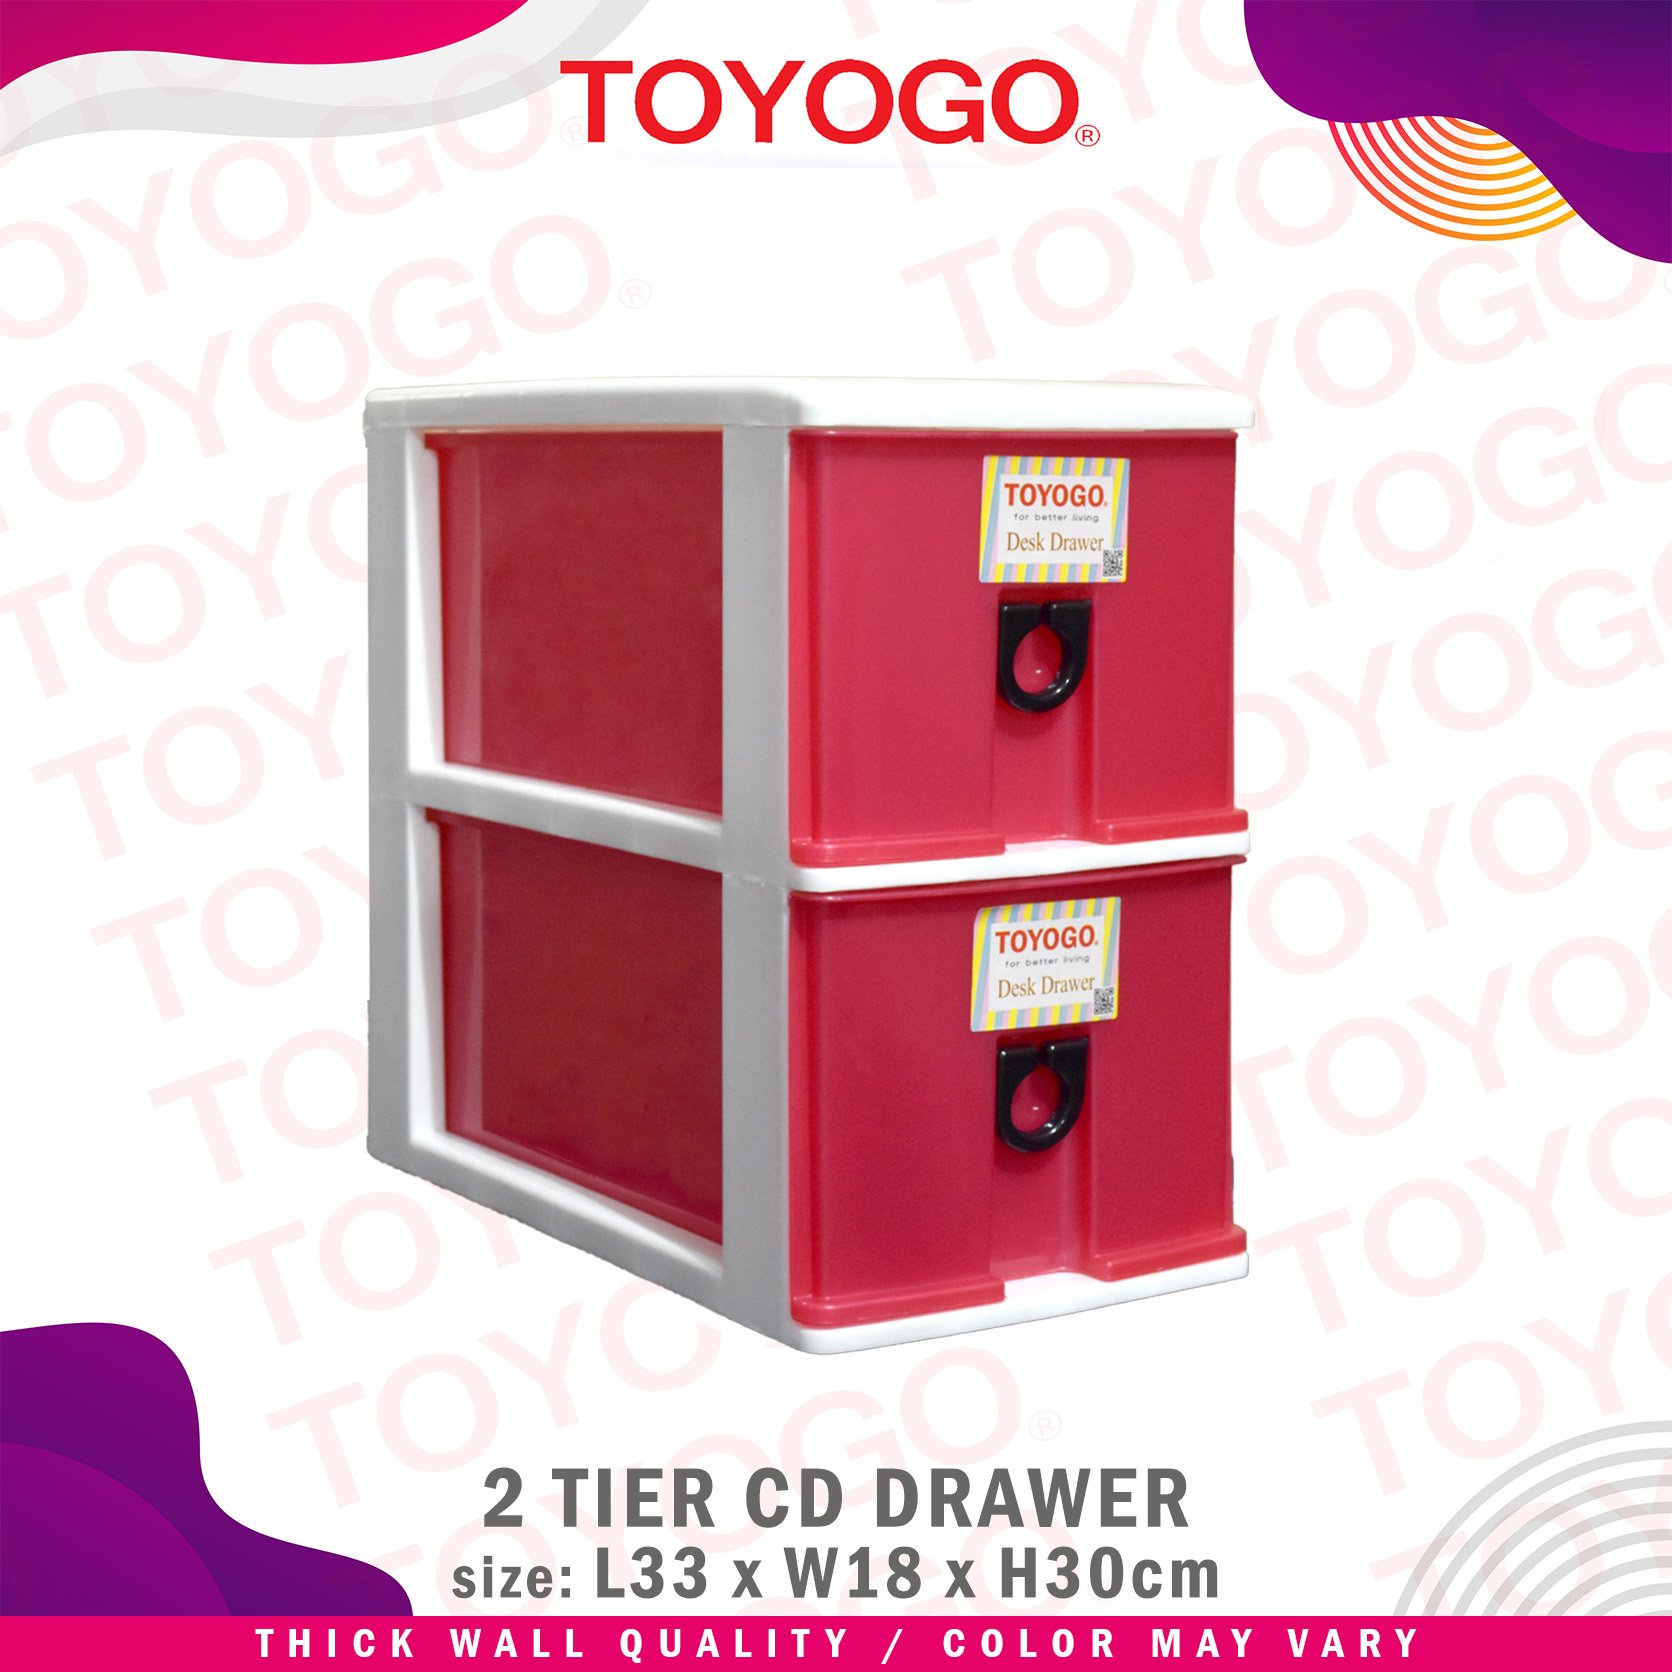 Toyogo Plastic CD Drawer (2 Tier) (302-2)